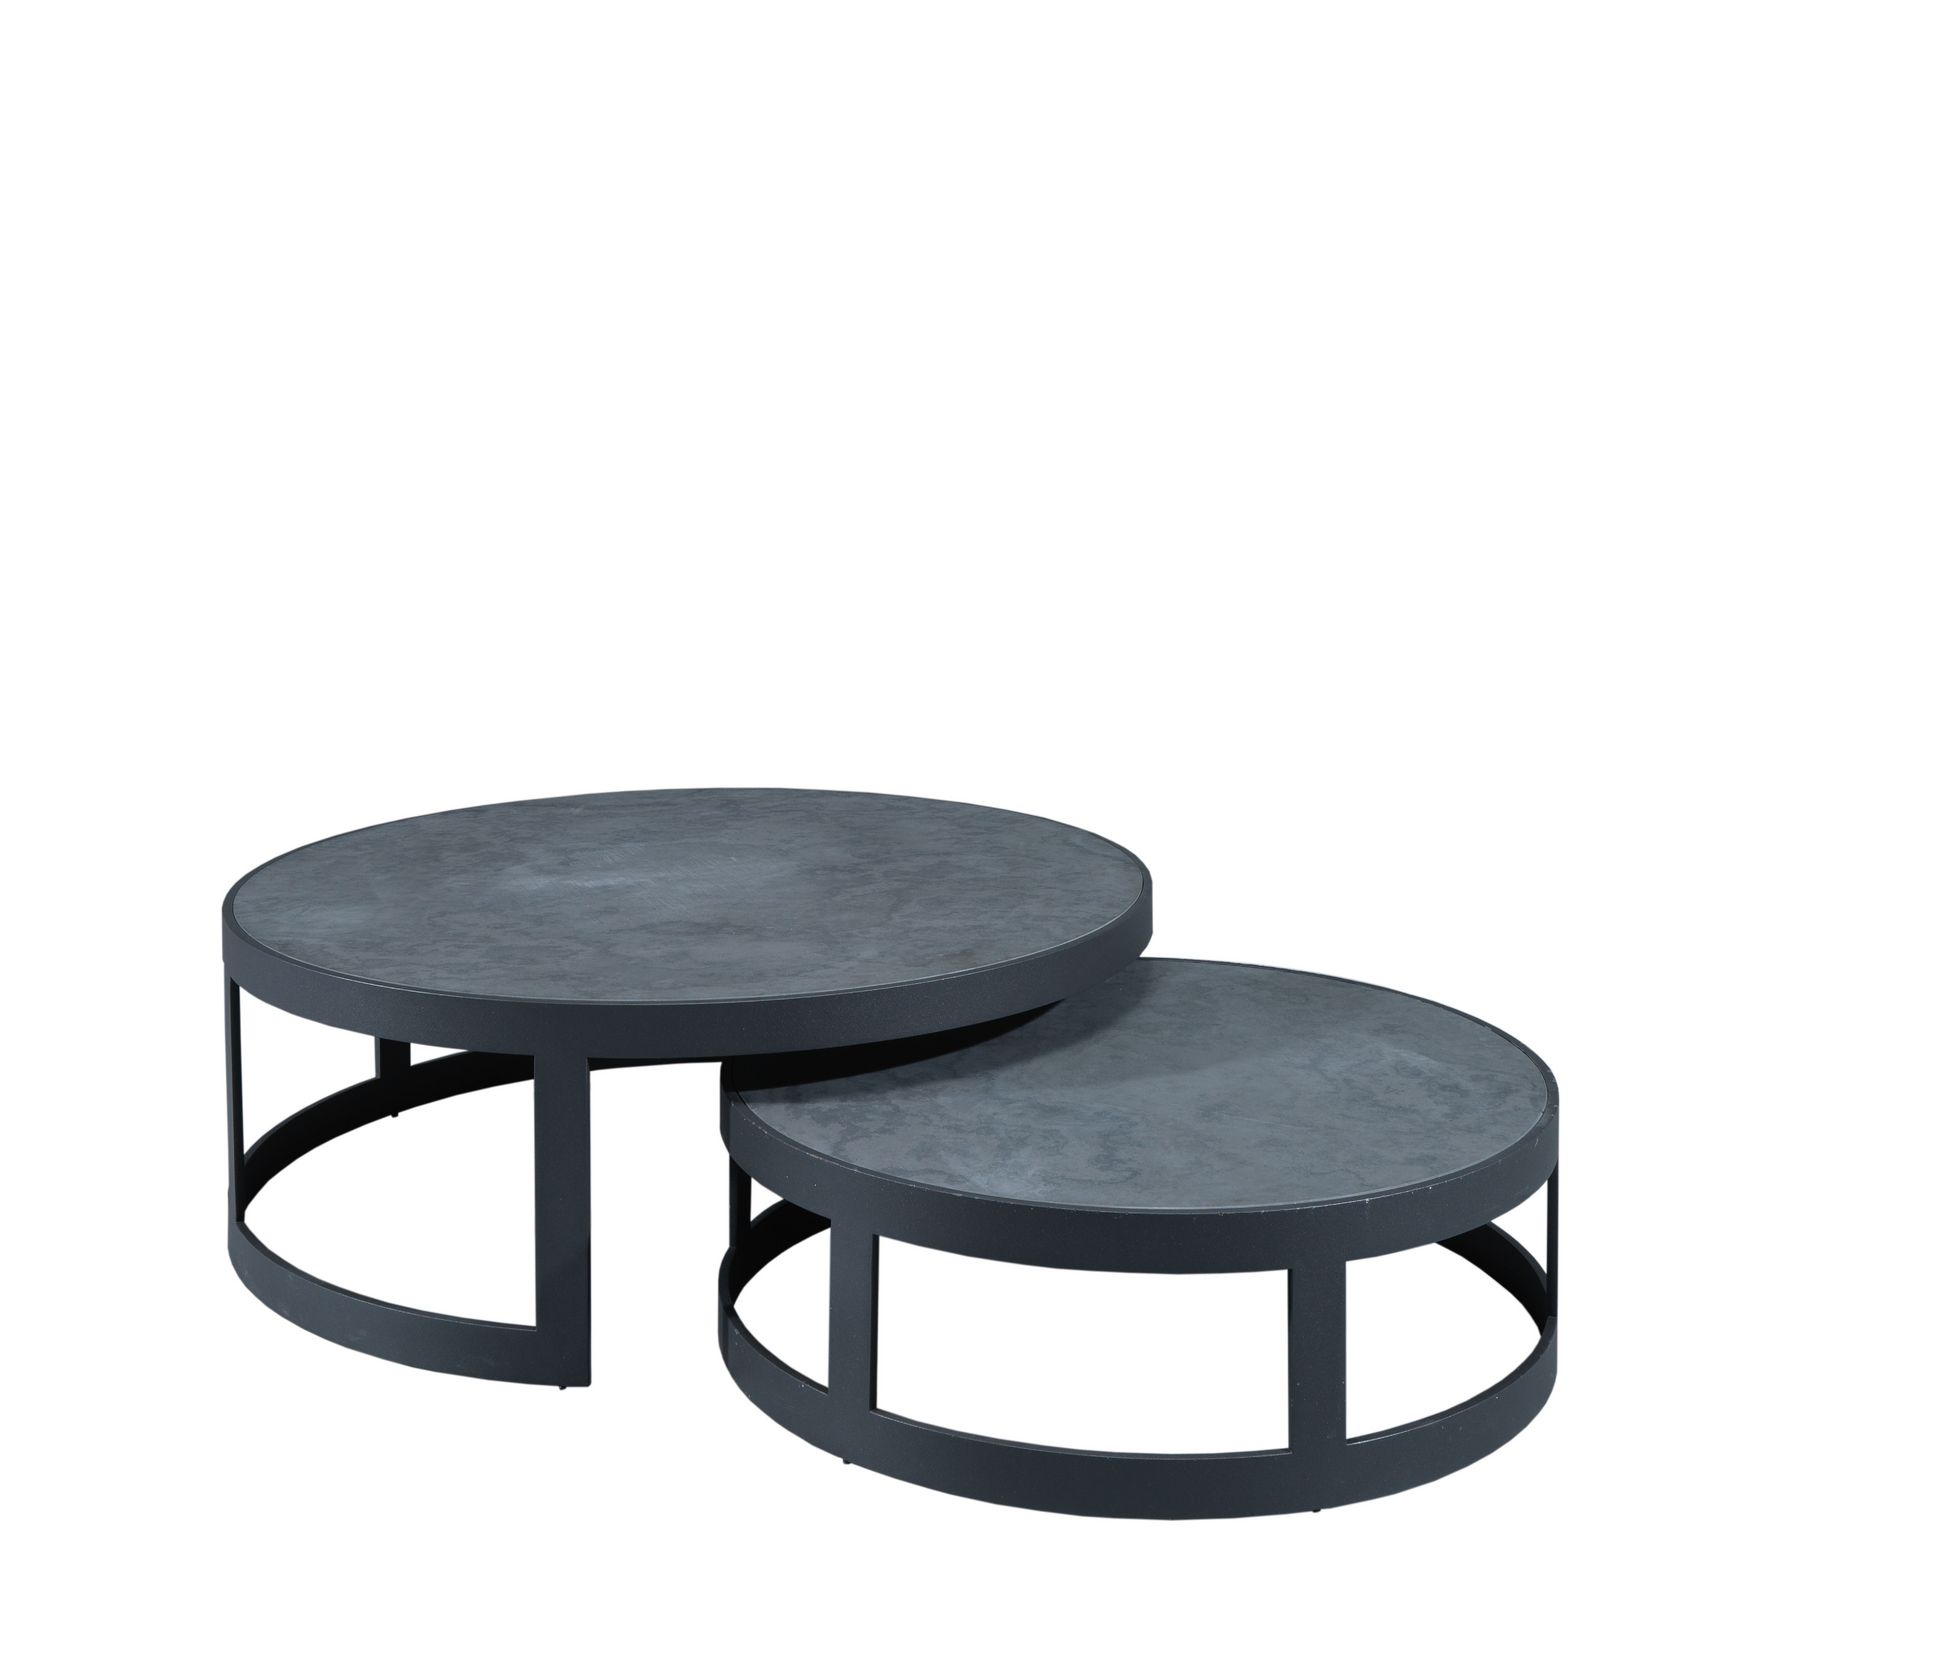 Laskasas | Lua Coffee Table | Set of round center tables with wrought iron structure and slate top. www.laskasas.com